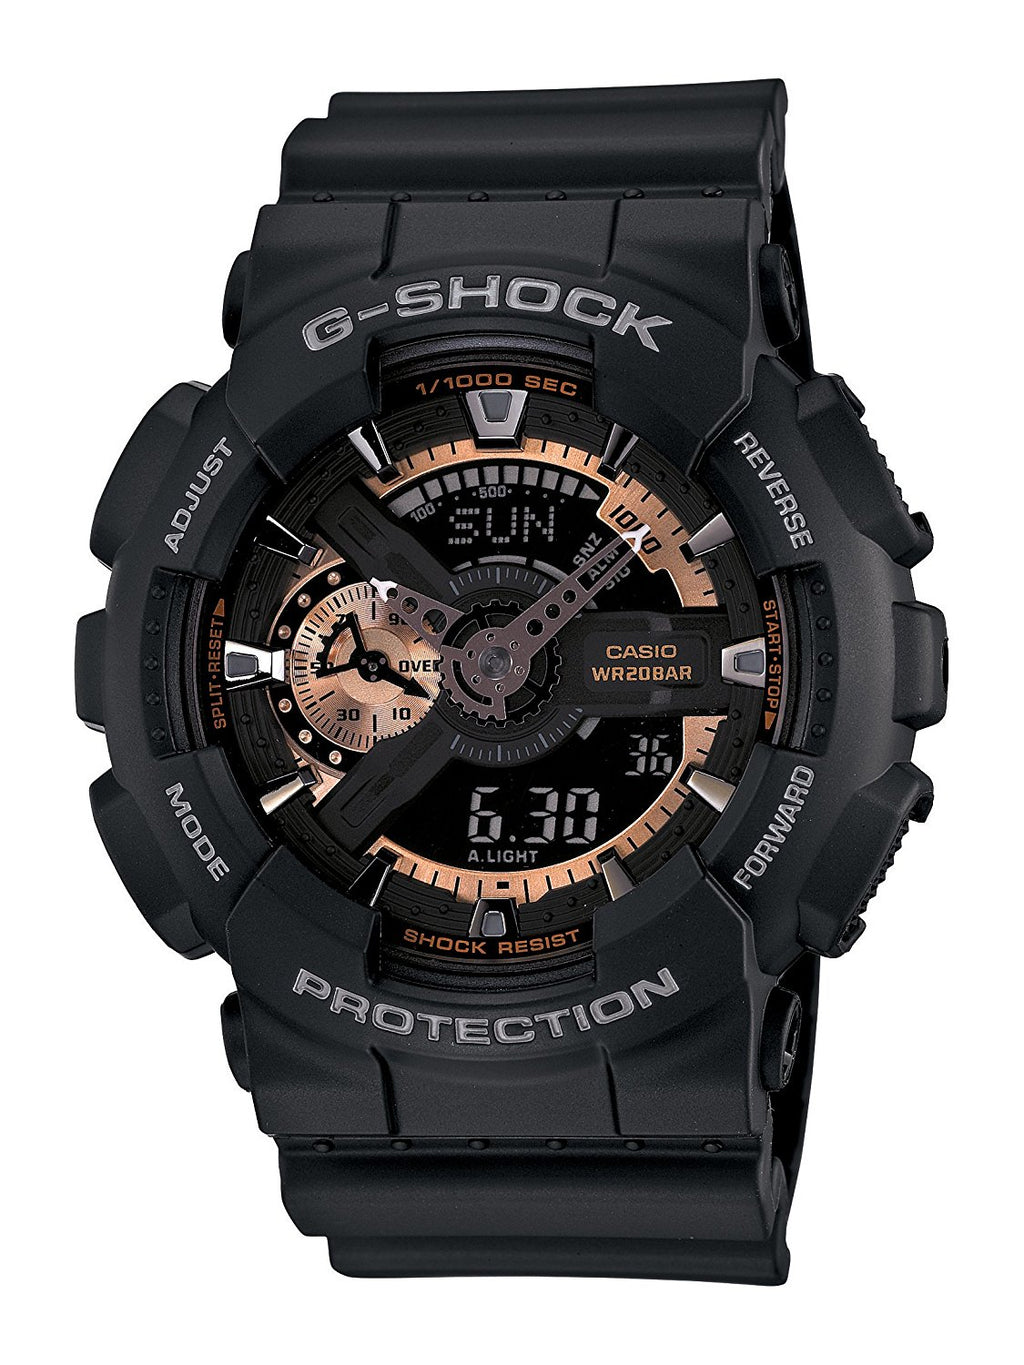 G-Shock Men's Analog Digital Black Resin Strap Watch - 'Stat-Ment